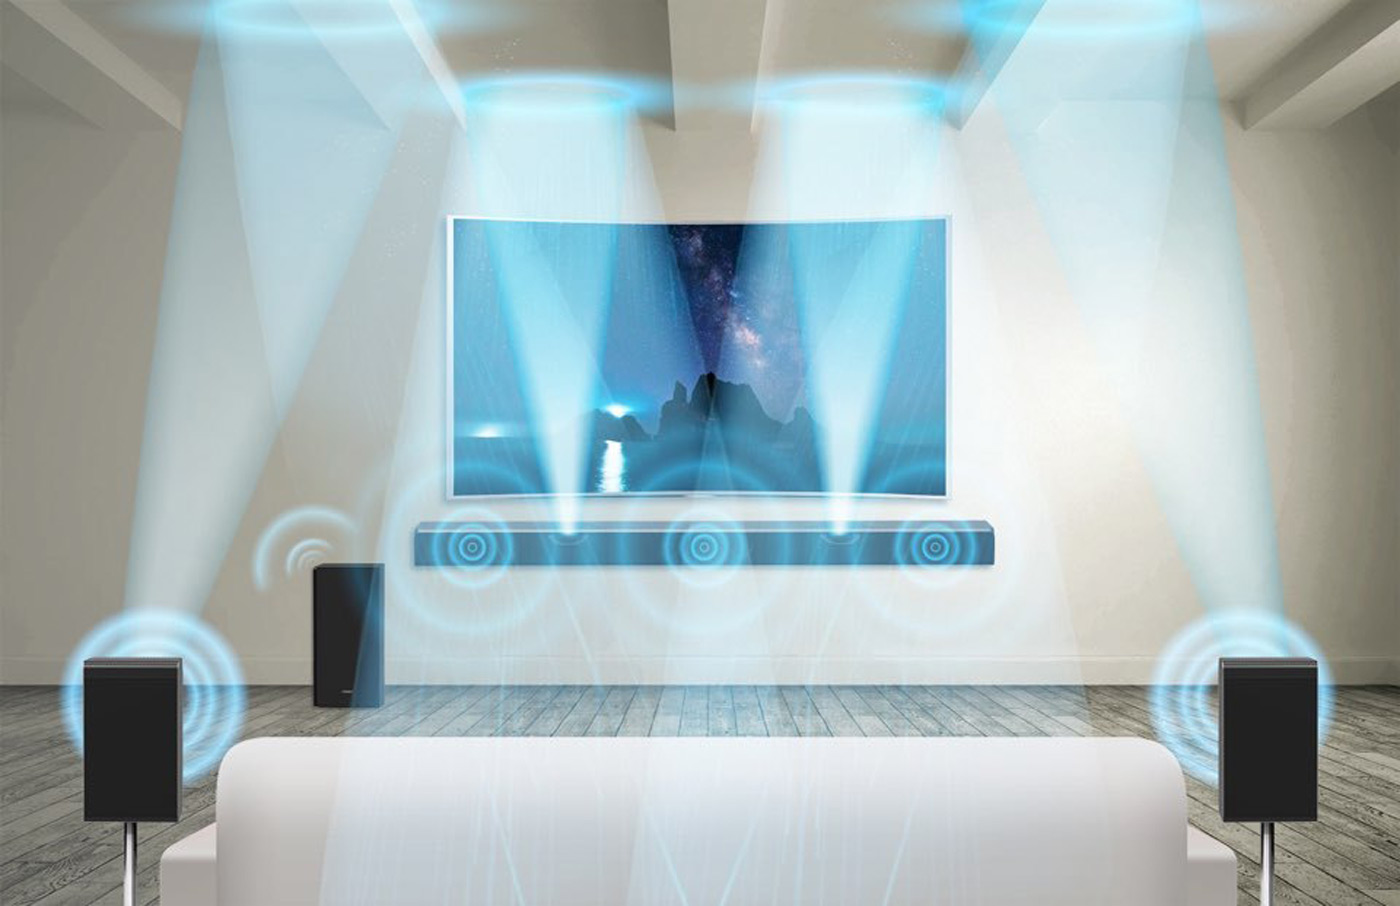 Samsung soundbar gives you Dolby Atmos out of the box